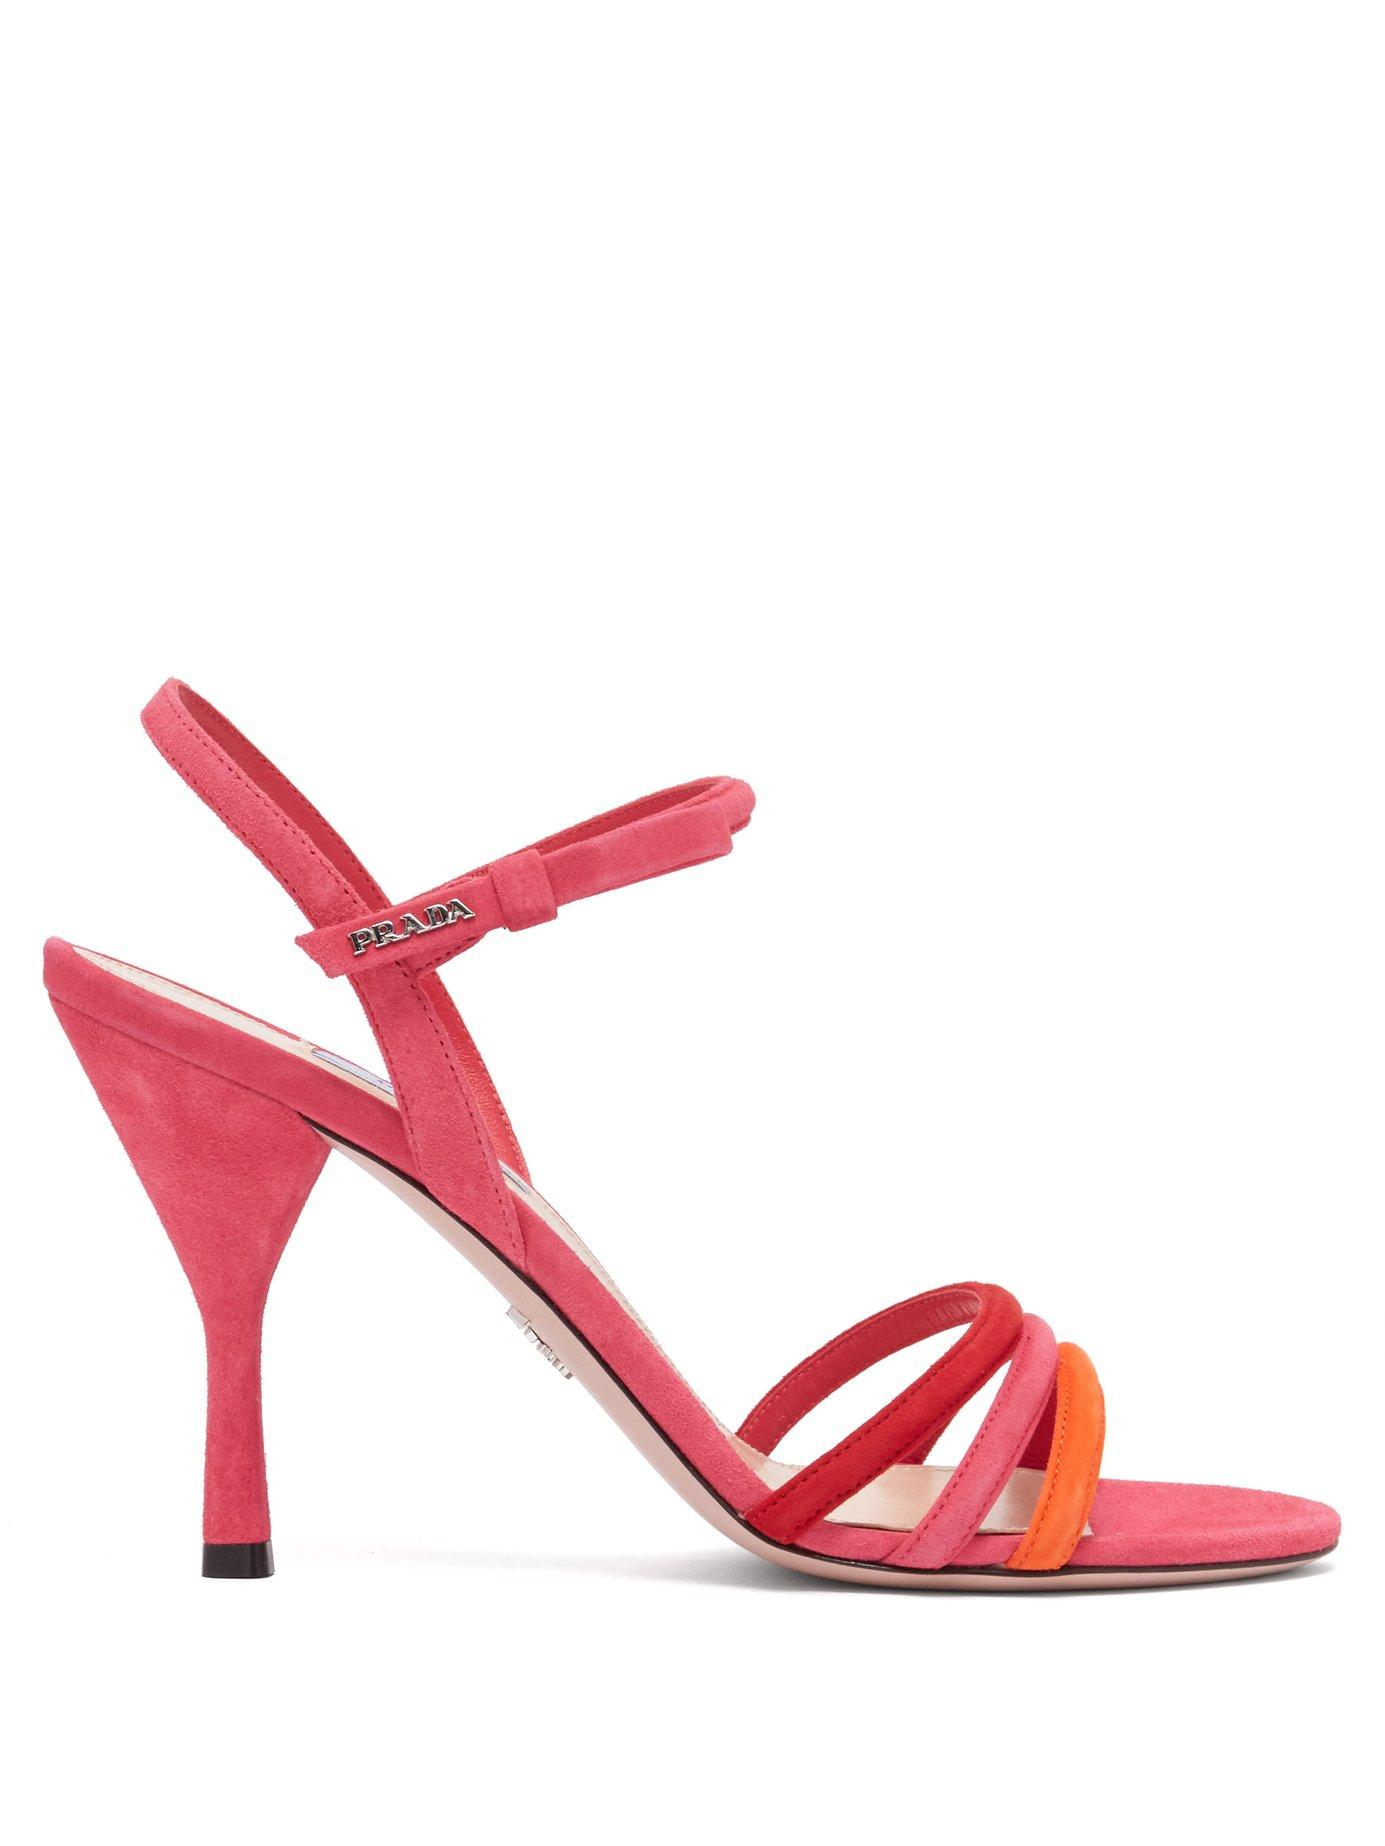 746a6be2755 Women's Pink Trio Strap Slingback Suede And Leather Sandals